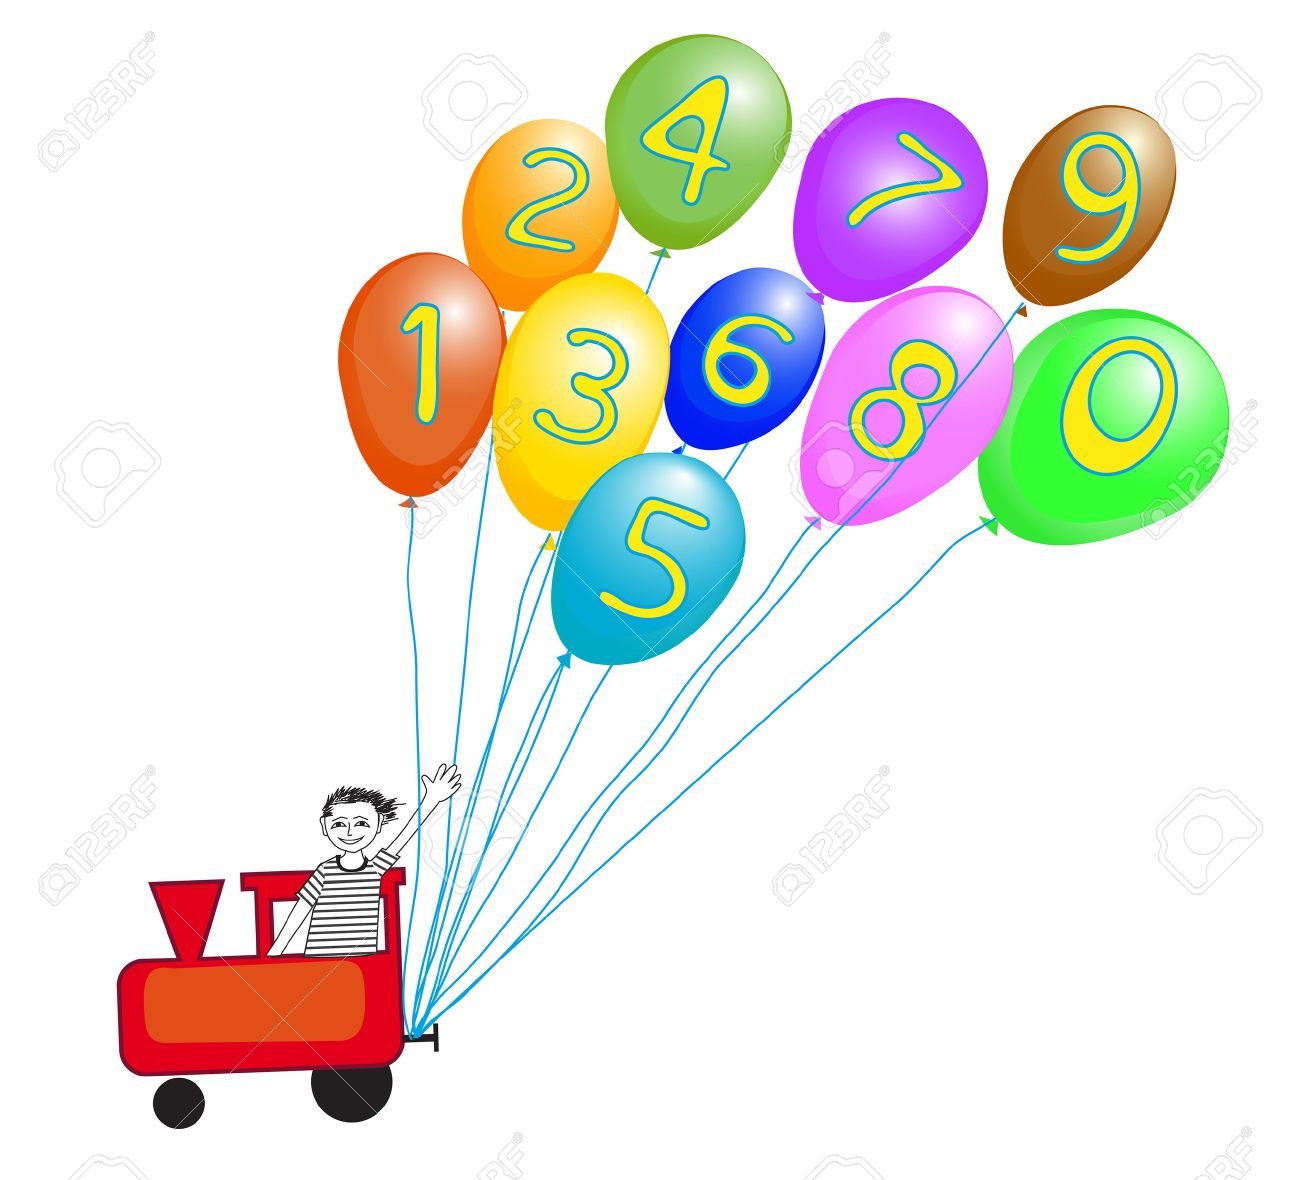 Toy train operated by smiling boy with colorful baloons and numbers for preschool learning Stock Vector - 23210687